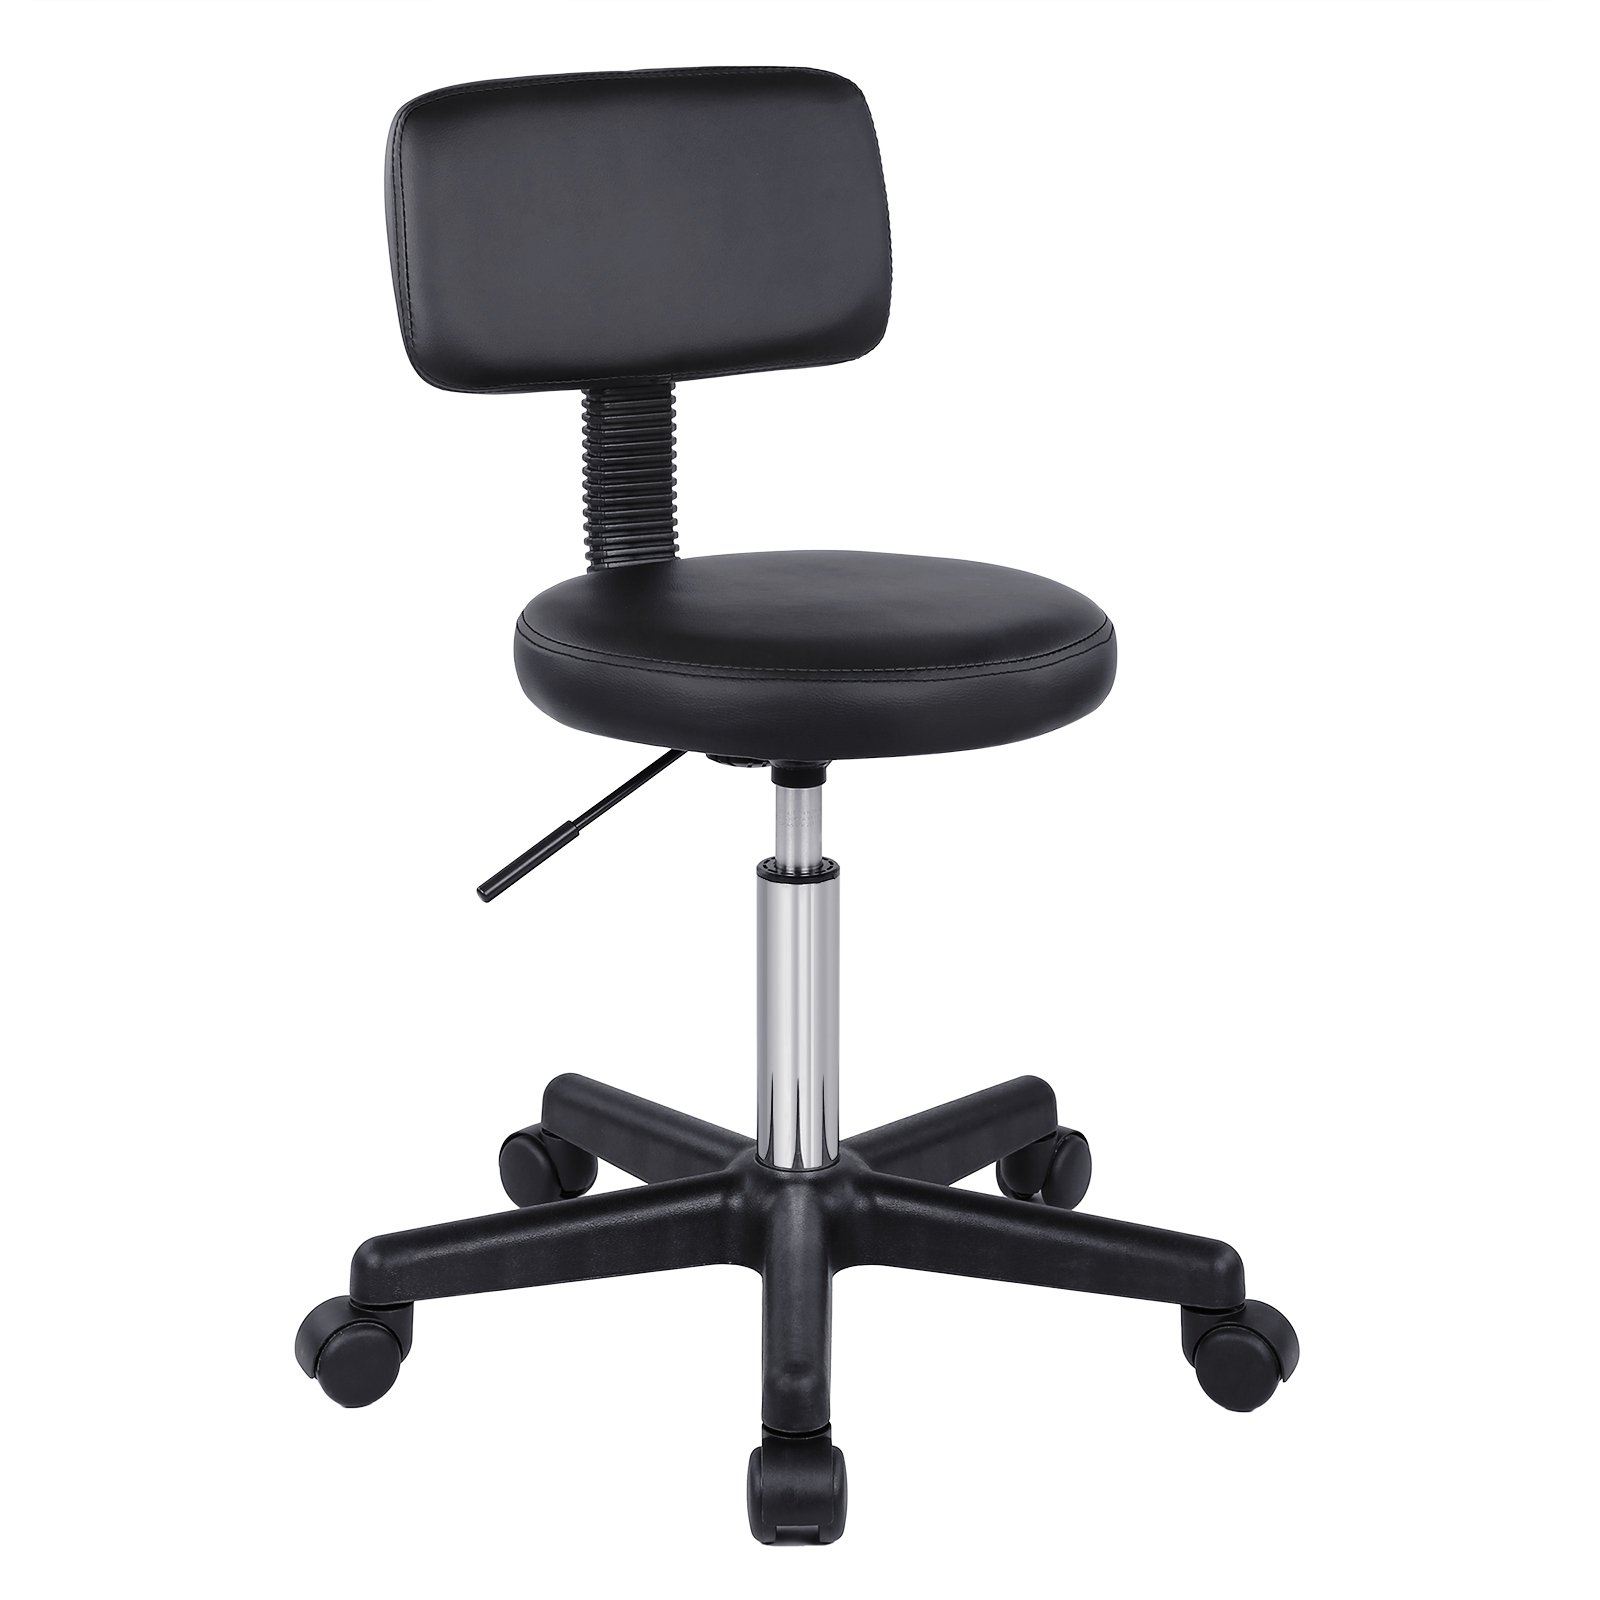 SONGMICS Adjustable Massage Salon Spa Stool Swivel Rolling Chair with Padded Stool and Back Support PU Black ULJB82B